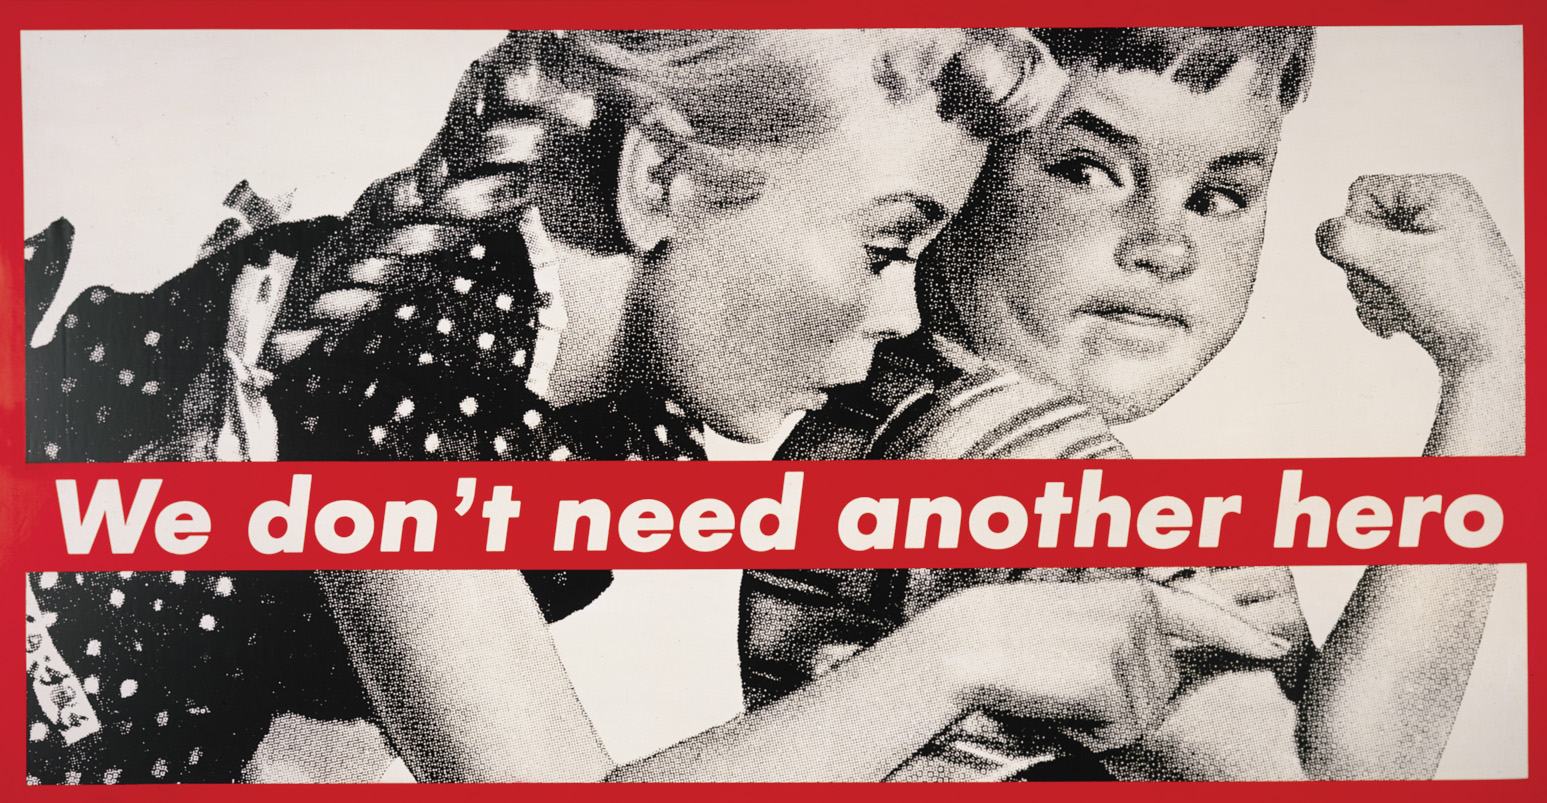 Barbara Kruger – Untitled (We don't need another hero)